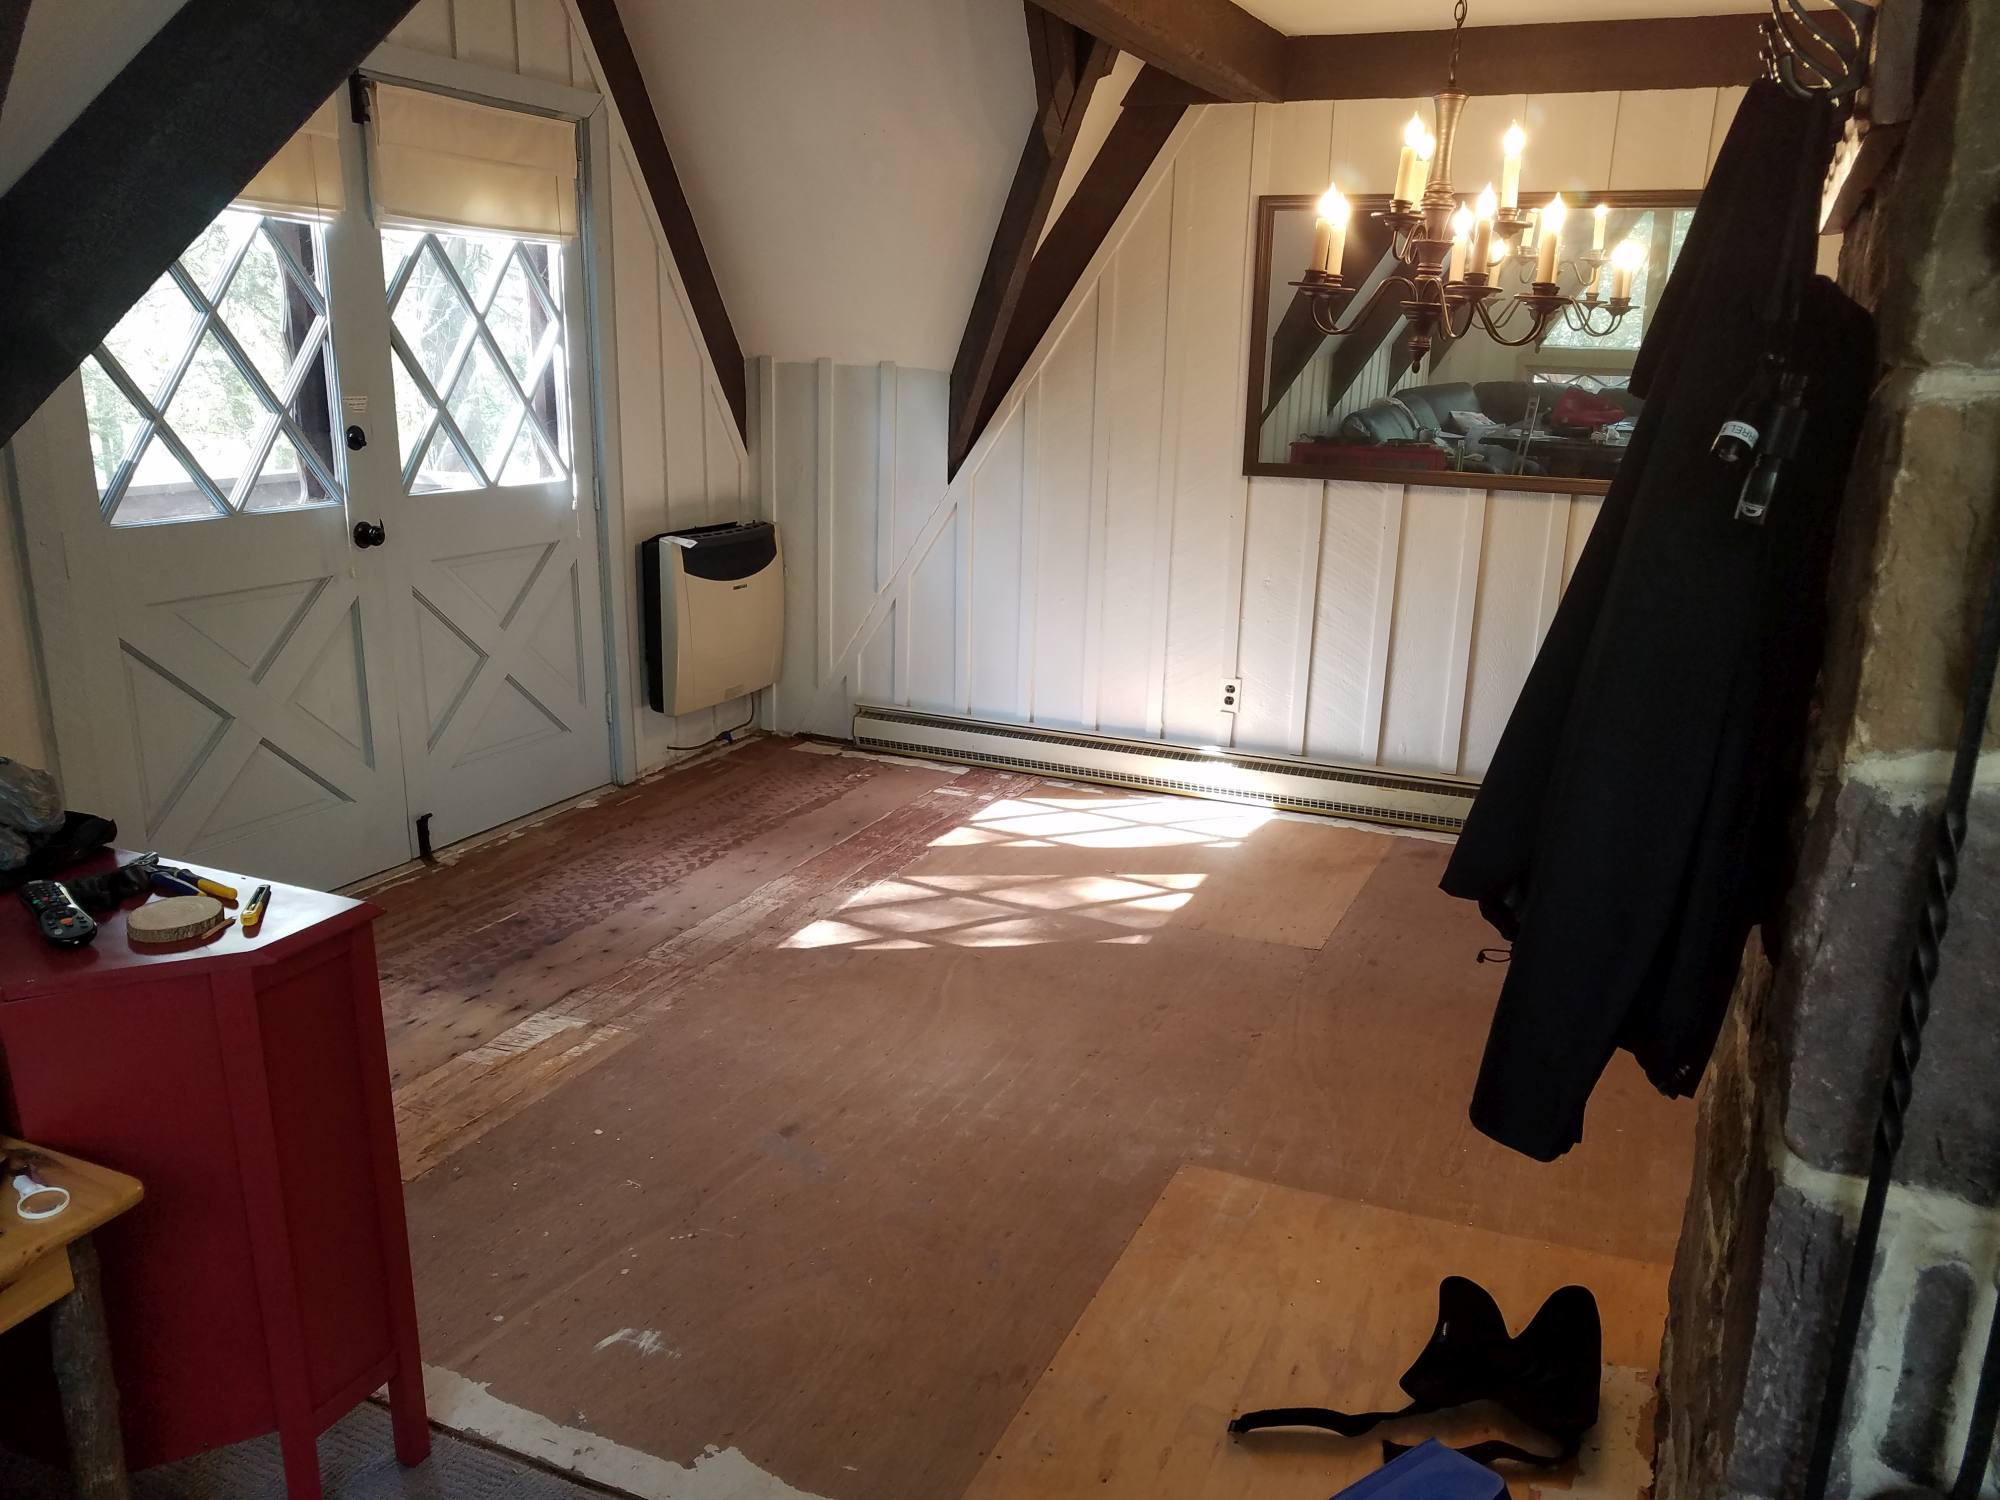 DIY Farmhouse Wide Plank Floor Made From Plywood - The Dining Room Subfloor With Staples Removed